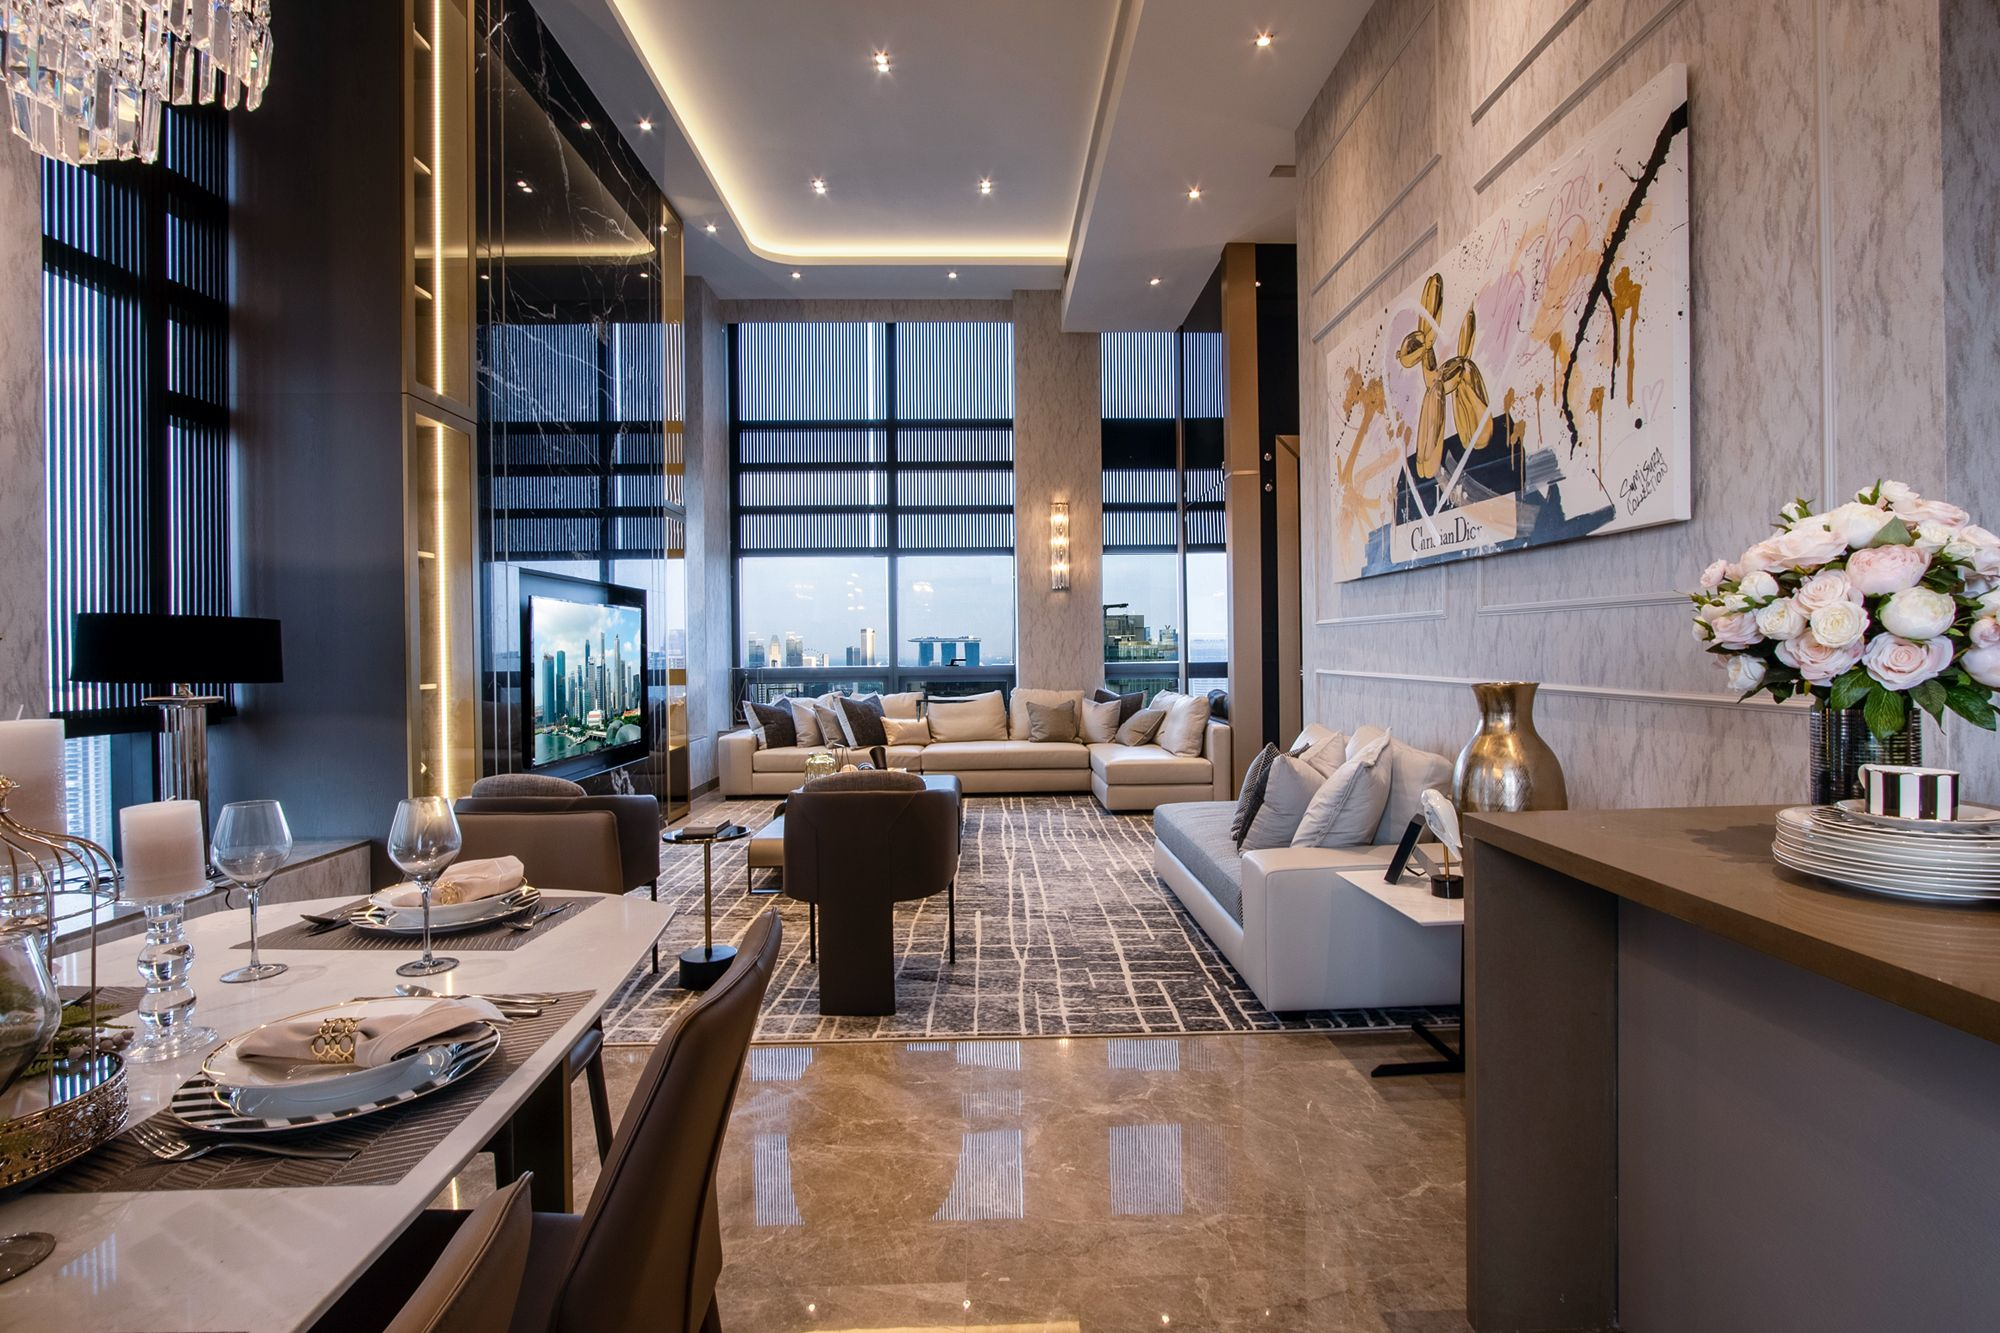 A polished Noir Marquina marble feature wall near the windows is a focal point in the living area